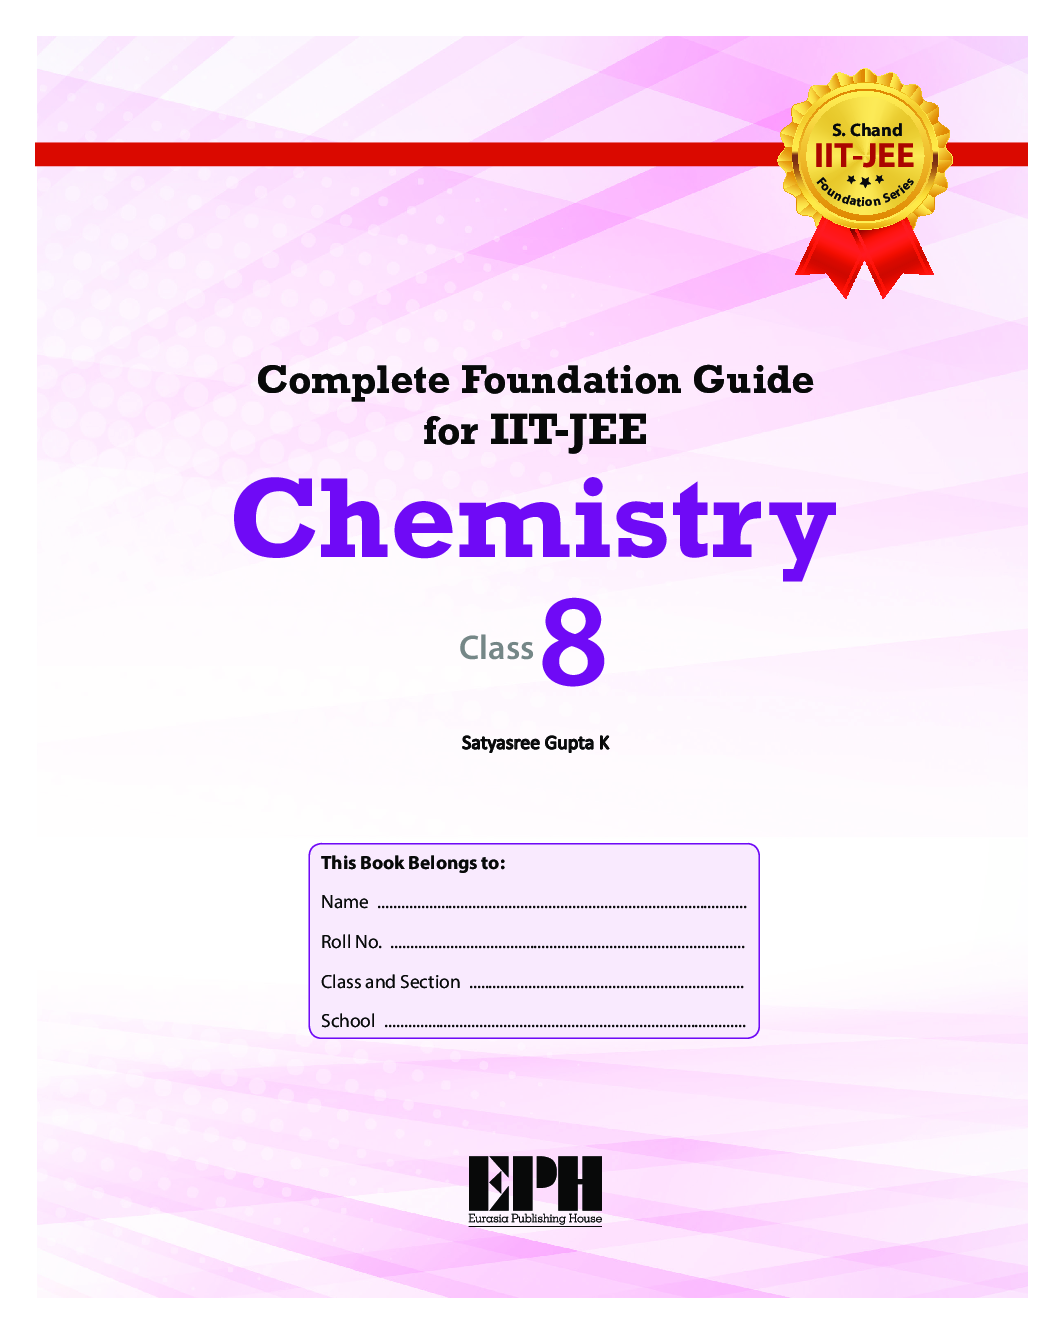 Complete Foundation Guide For IIT Jee, Chemistry Class 8 - Page 2